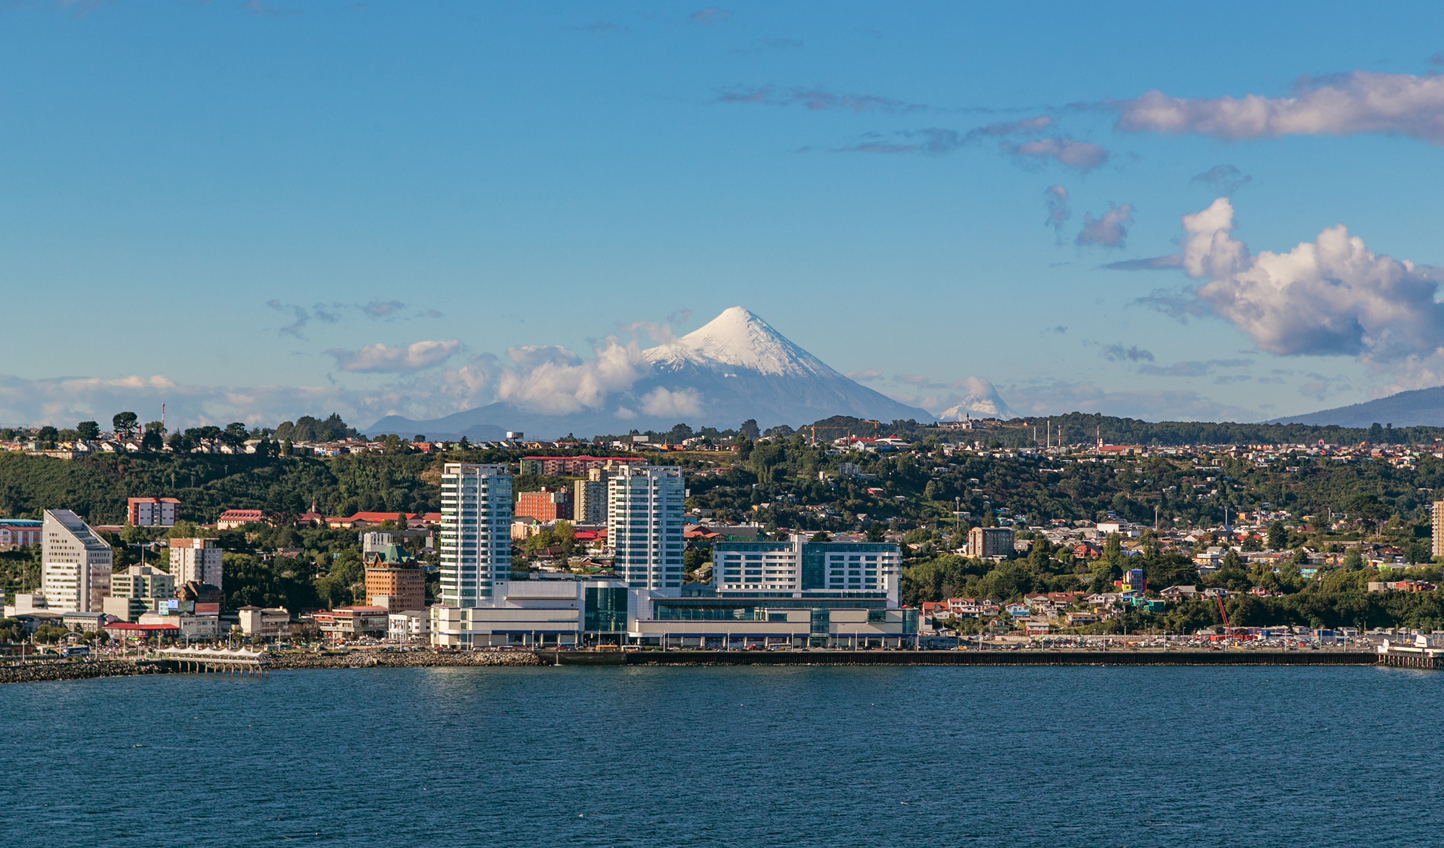 Puerto Montt: The gateway to the Lake District